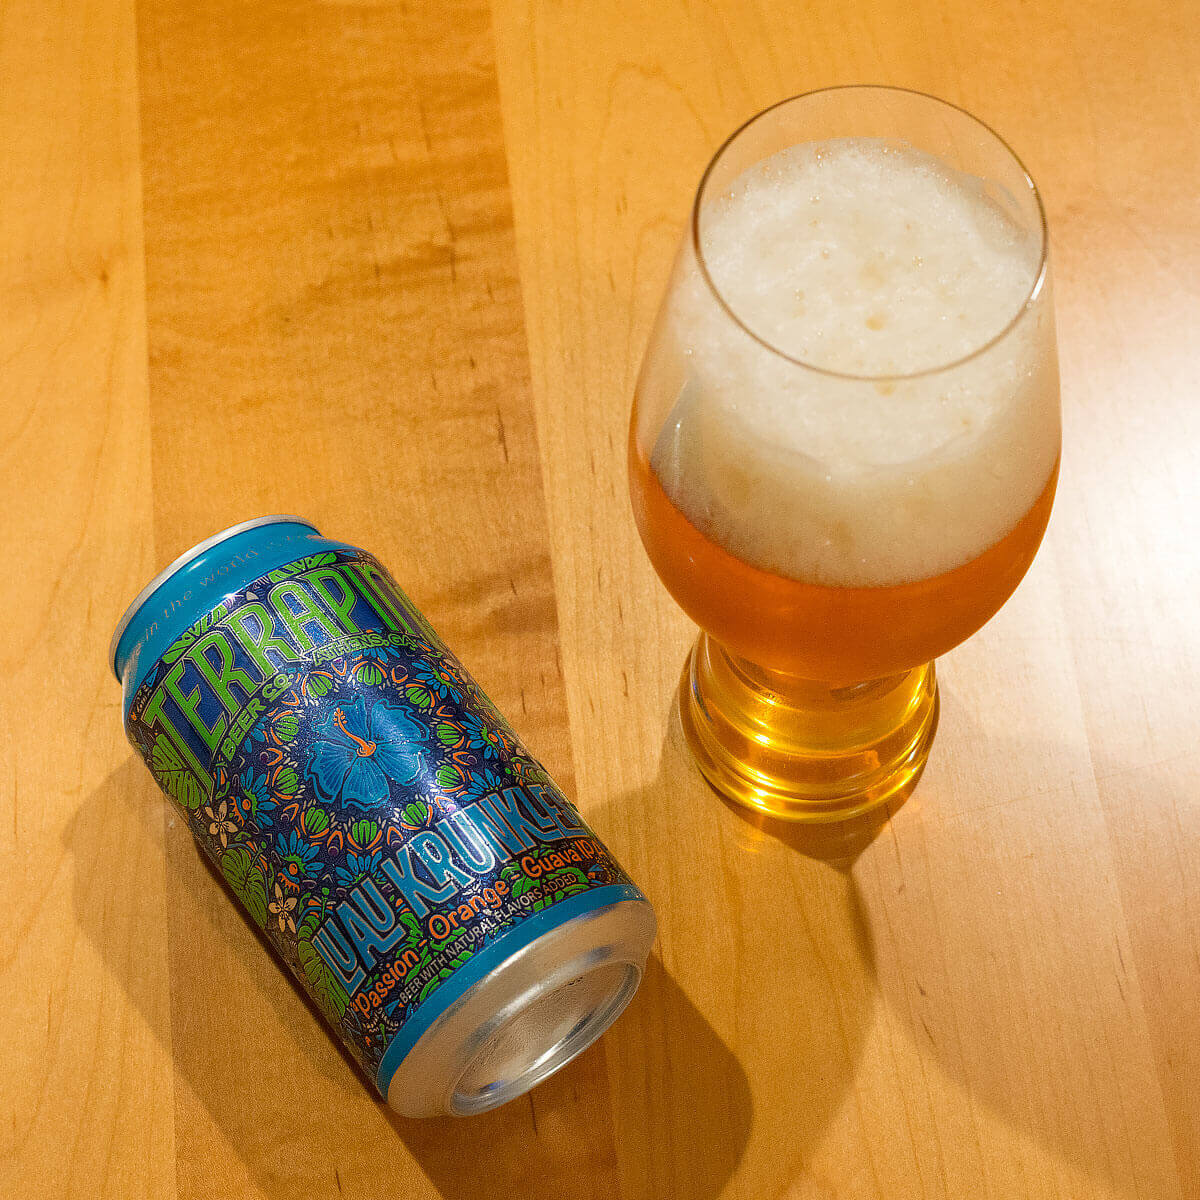 Luau Krunkles is an American IPA by Terrapin Beer Co. that deliciously blends sweet tropical fruit juices and a bite of citrus.